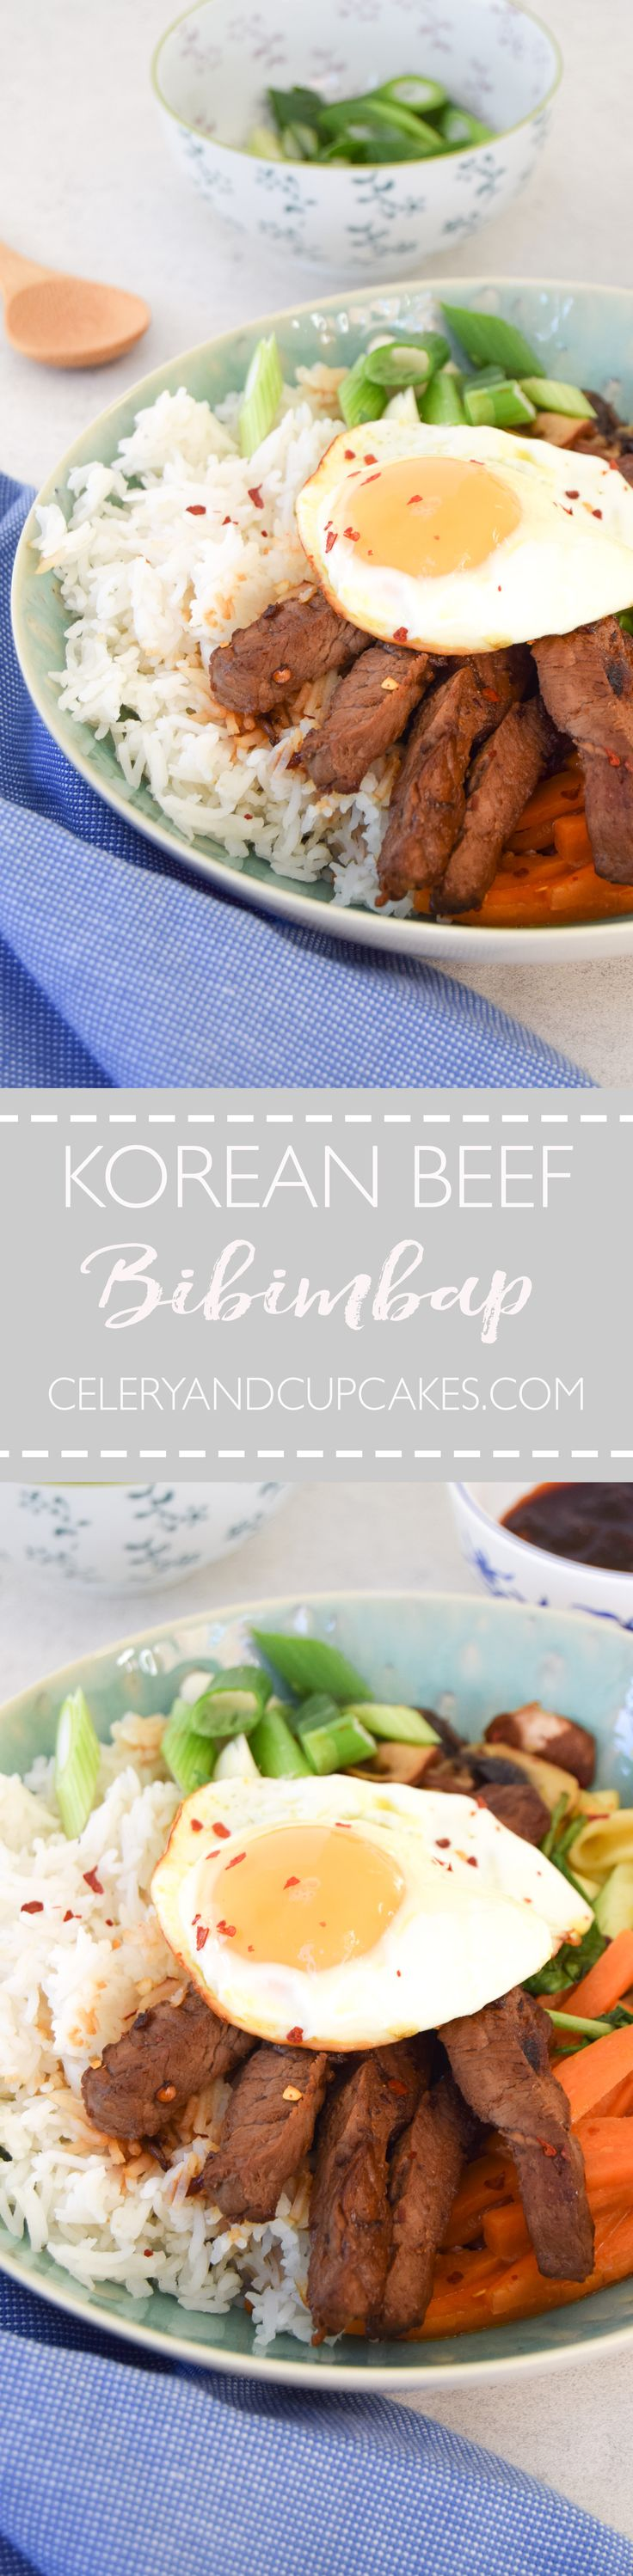 A popular Korean dish with lots of beautiful vegetables and protein.